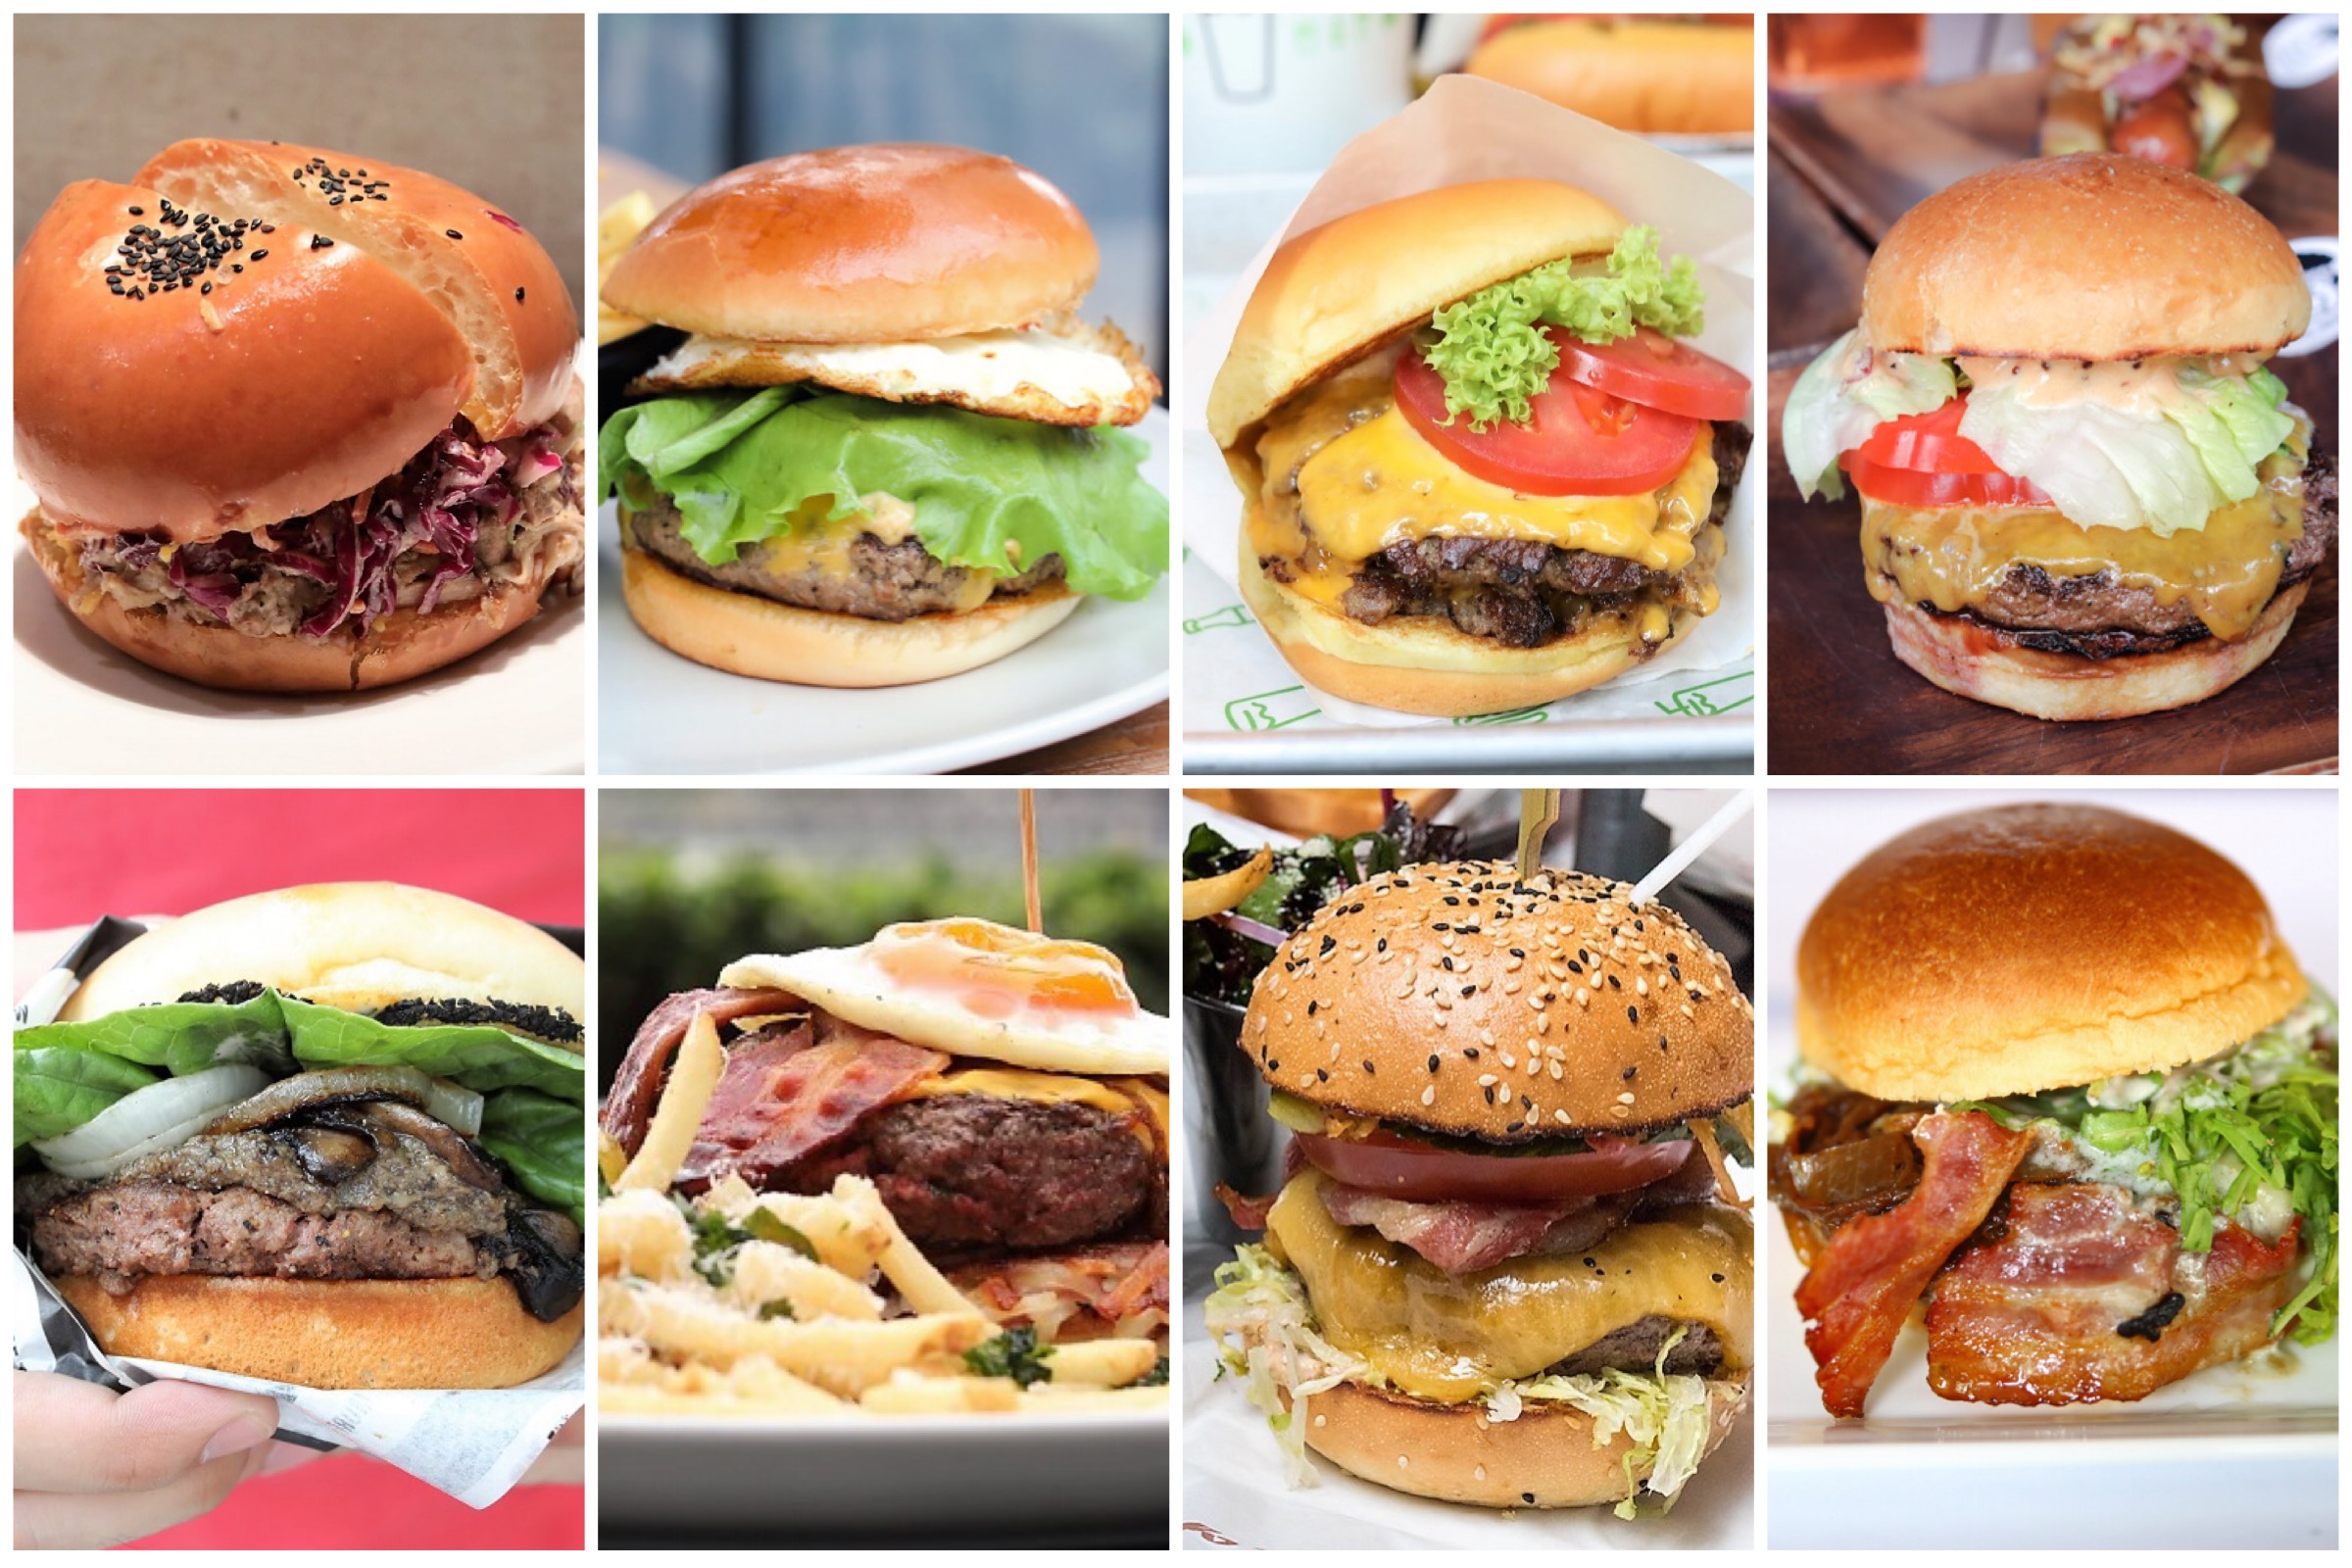 12 Must Try Burger Places In Singapore From Three Buns Burgerlabo Omakase Burger To Shake Shack Danielfooddiary Com